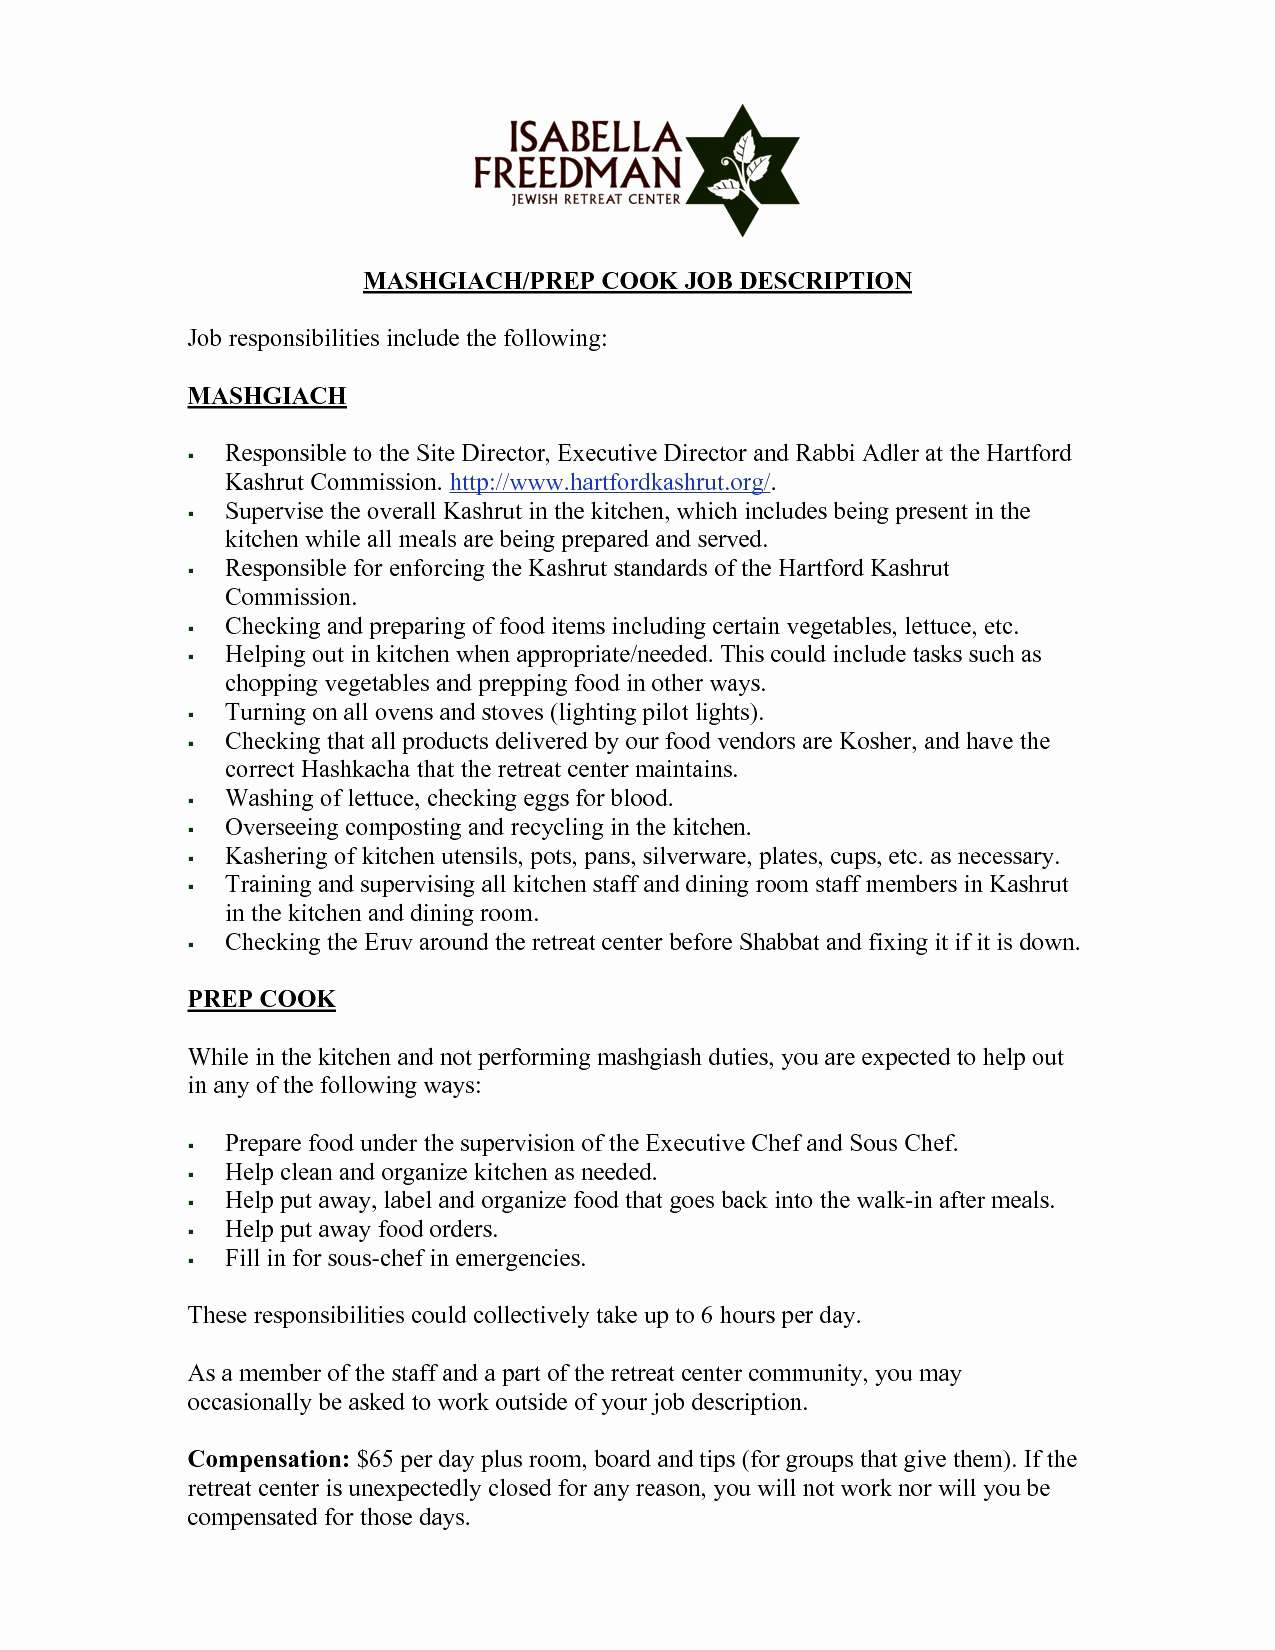 Modern Resume and Cover Letter Template - Free Modern Resume Templates Lovely Example Resume Cover Letter